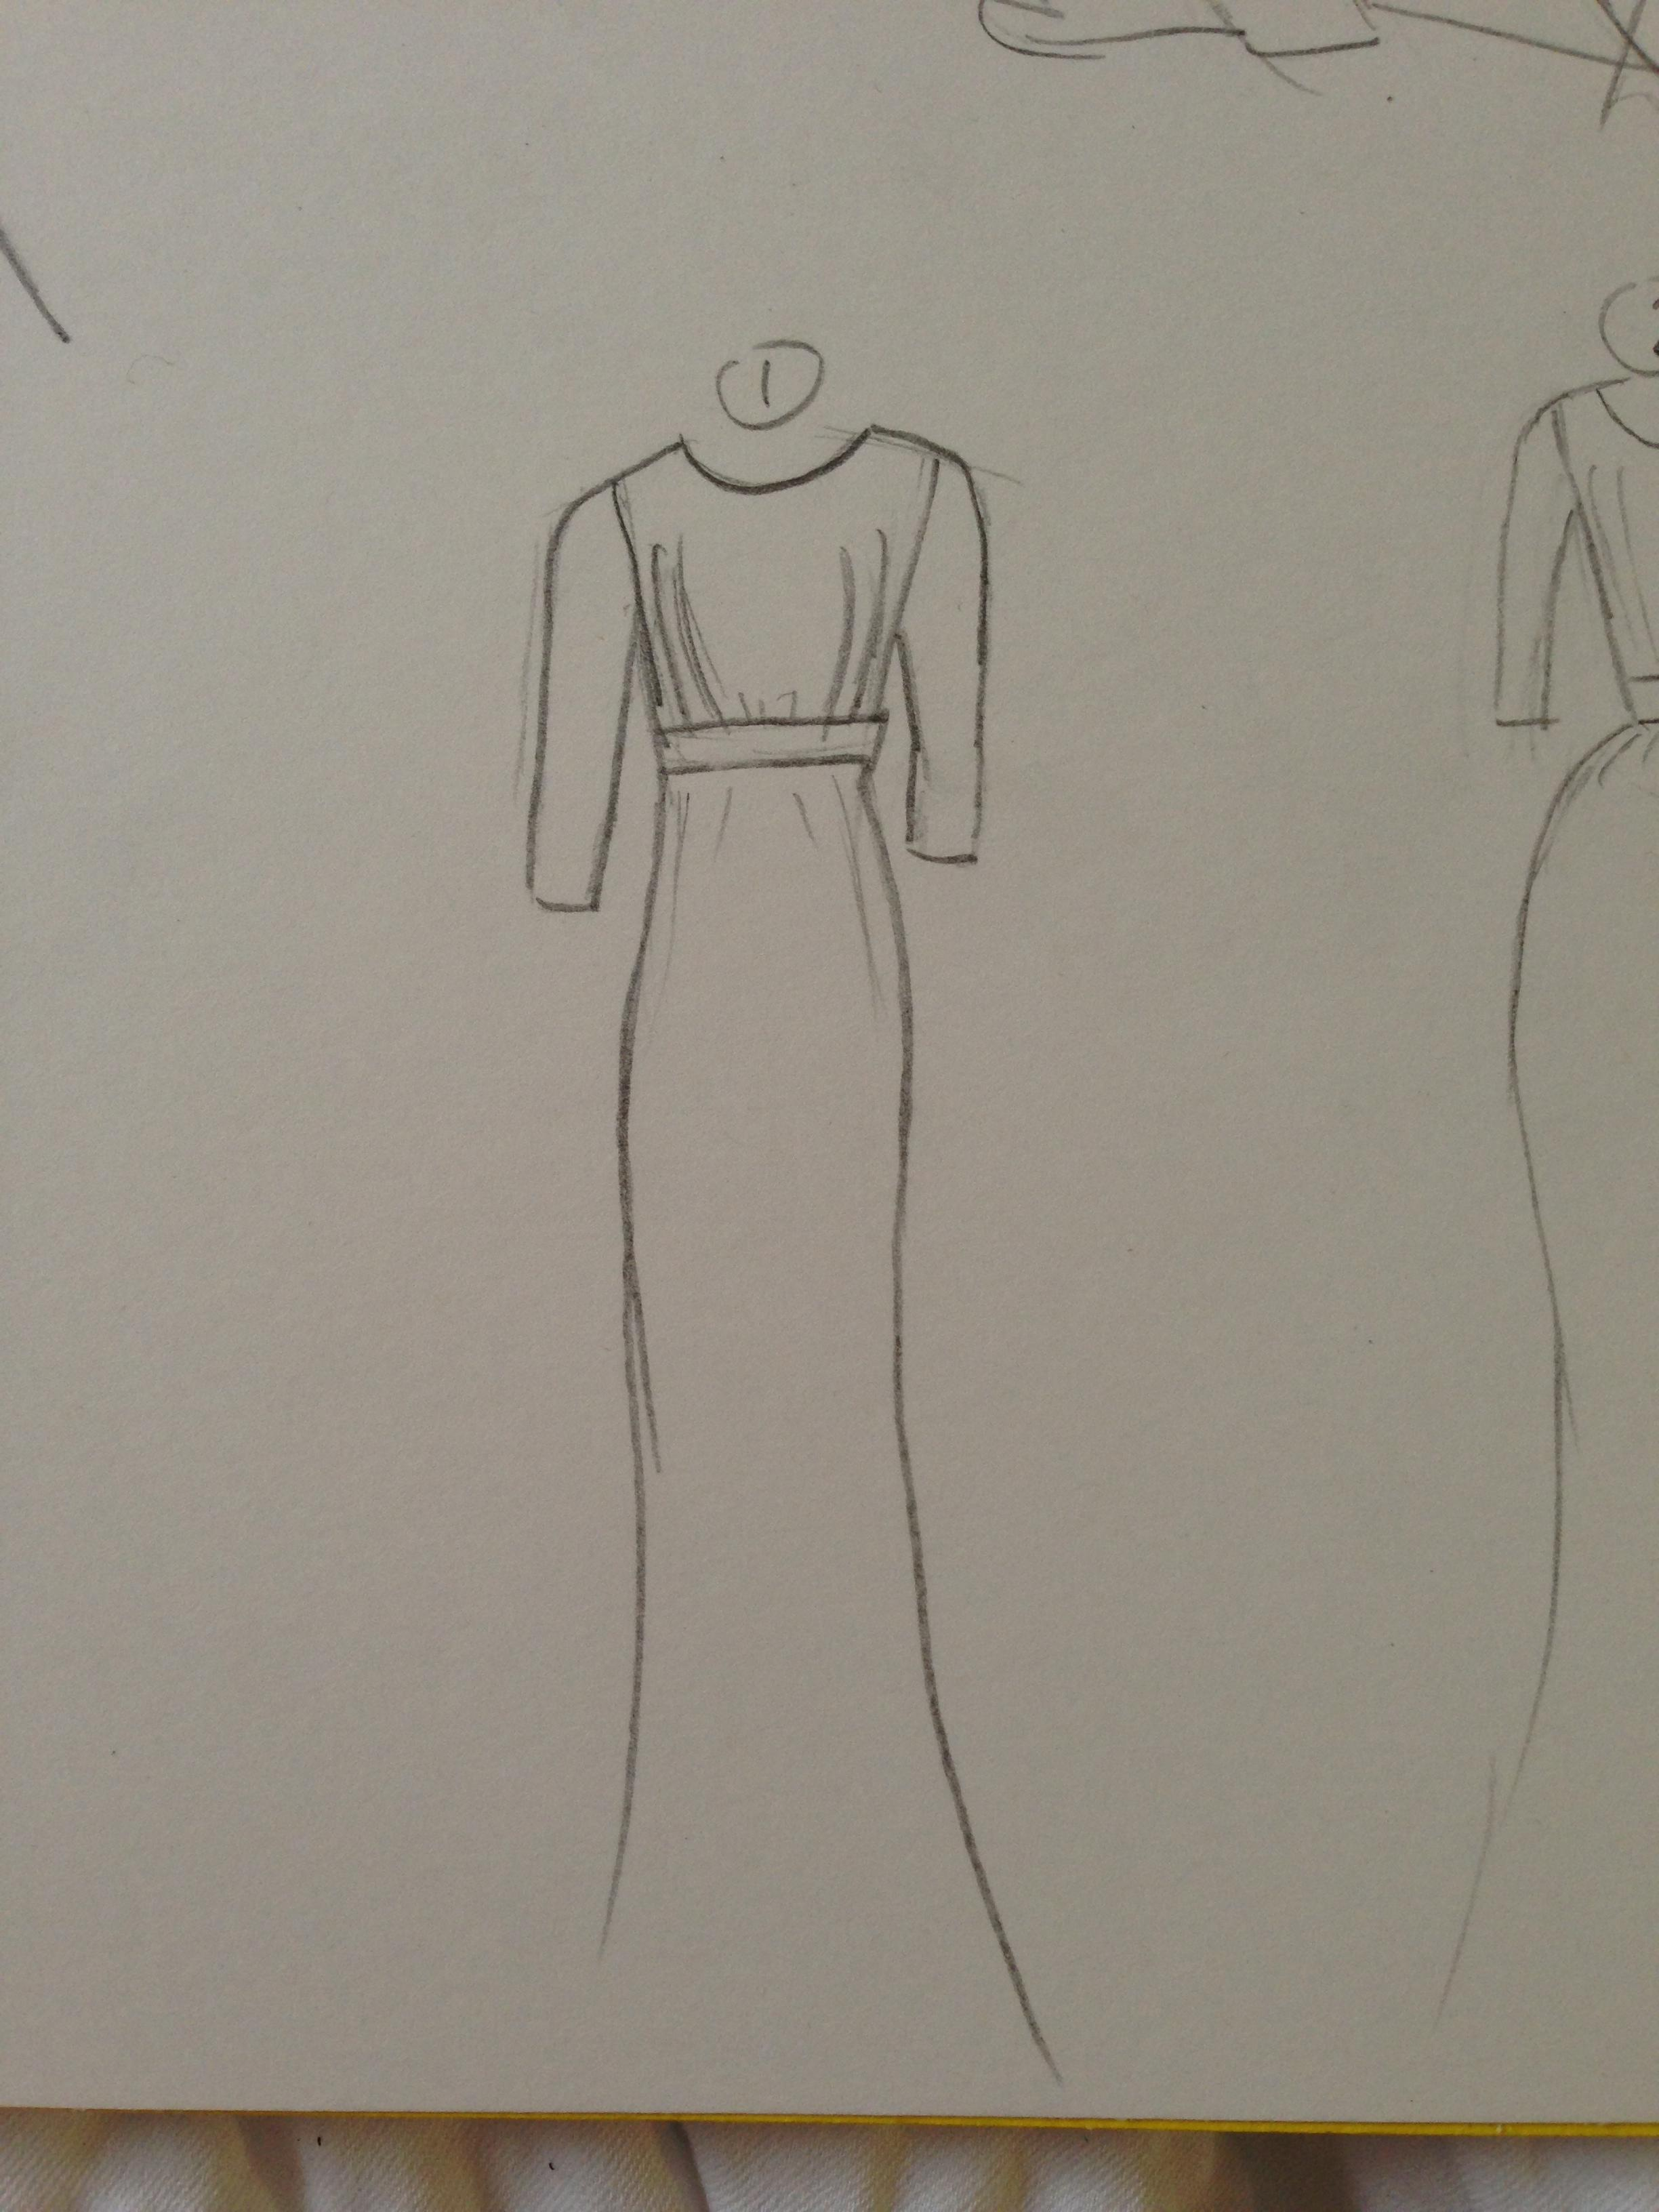 WATERCOLOR -- Dresses that Inspire - image 8 - student project